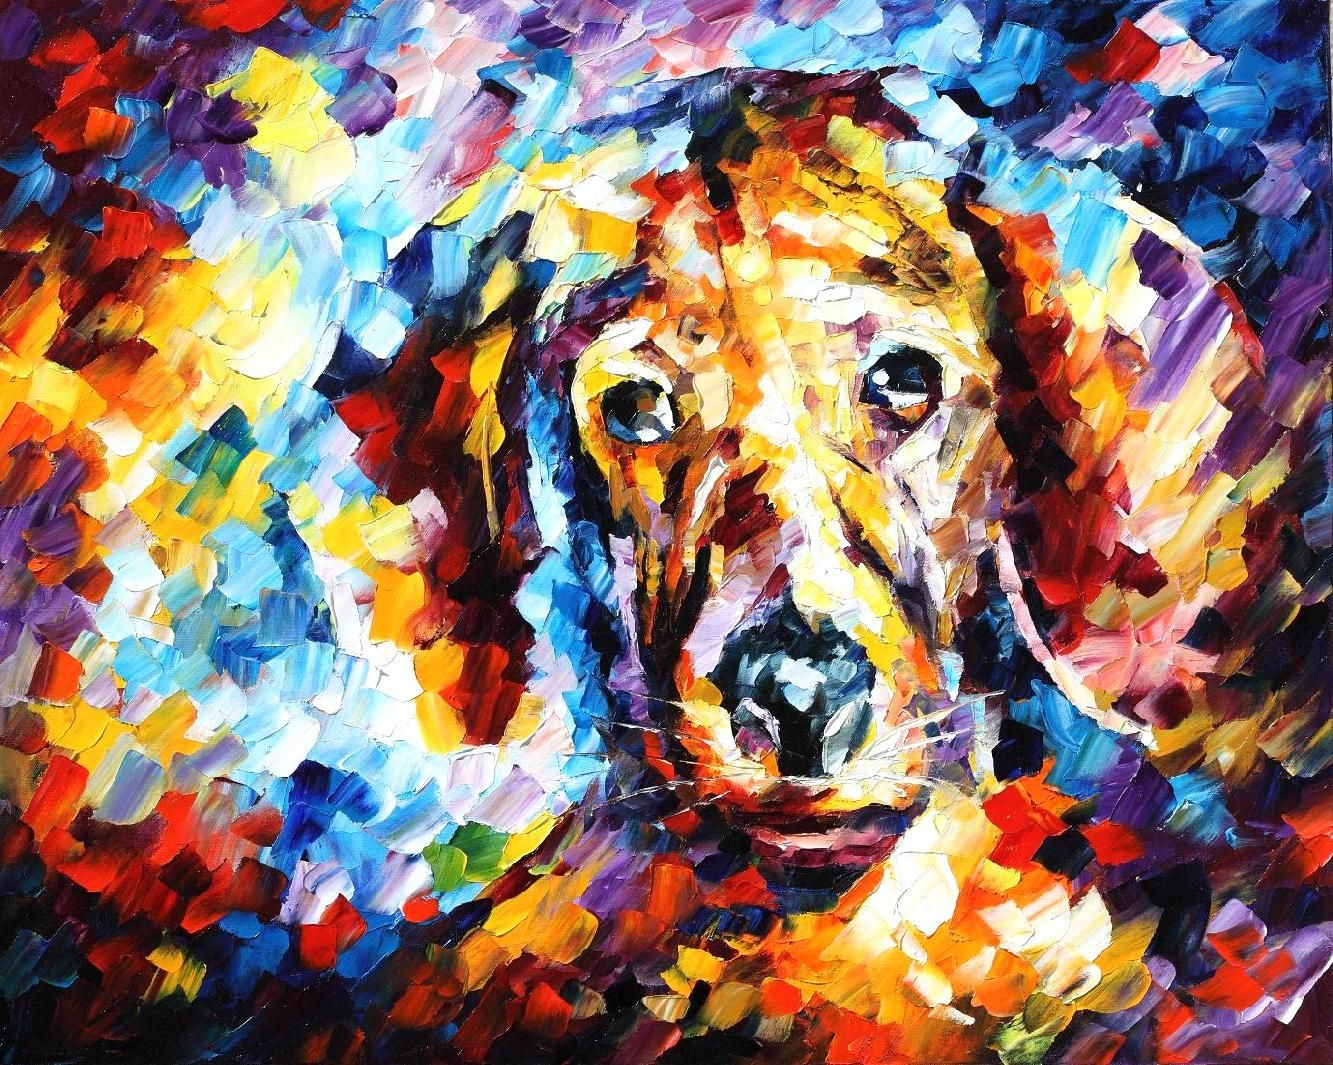 Best Art Dachshund Images On Pinterest Universe - Game of thrones pet paintings